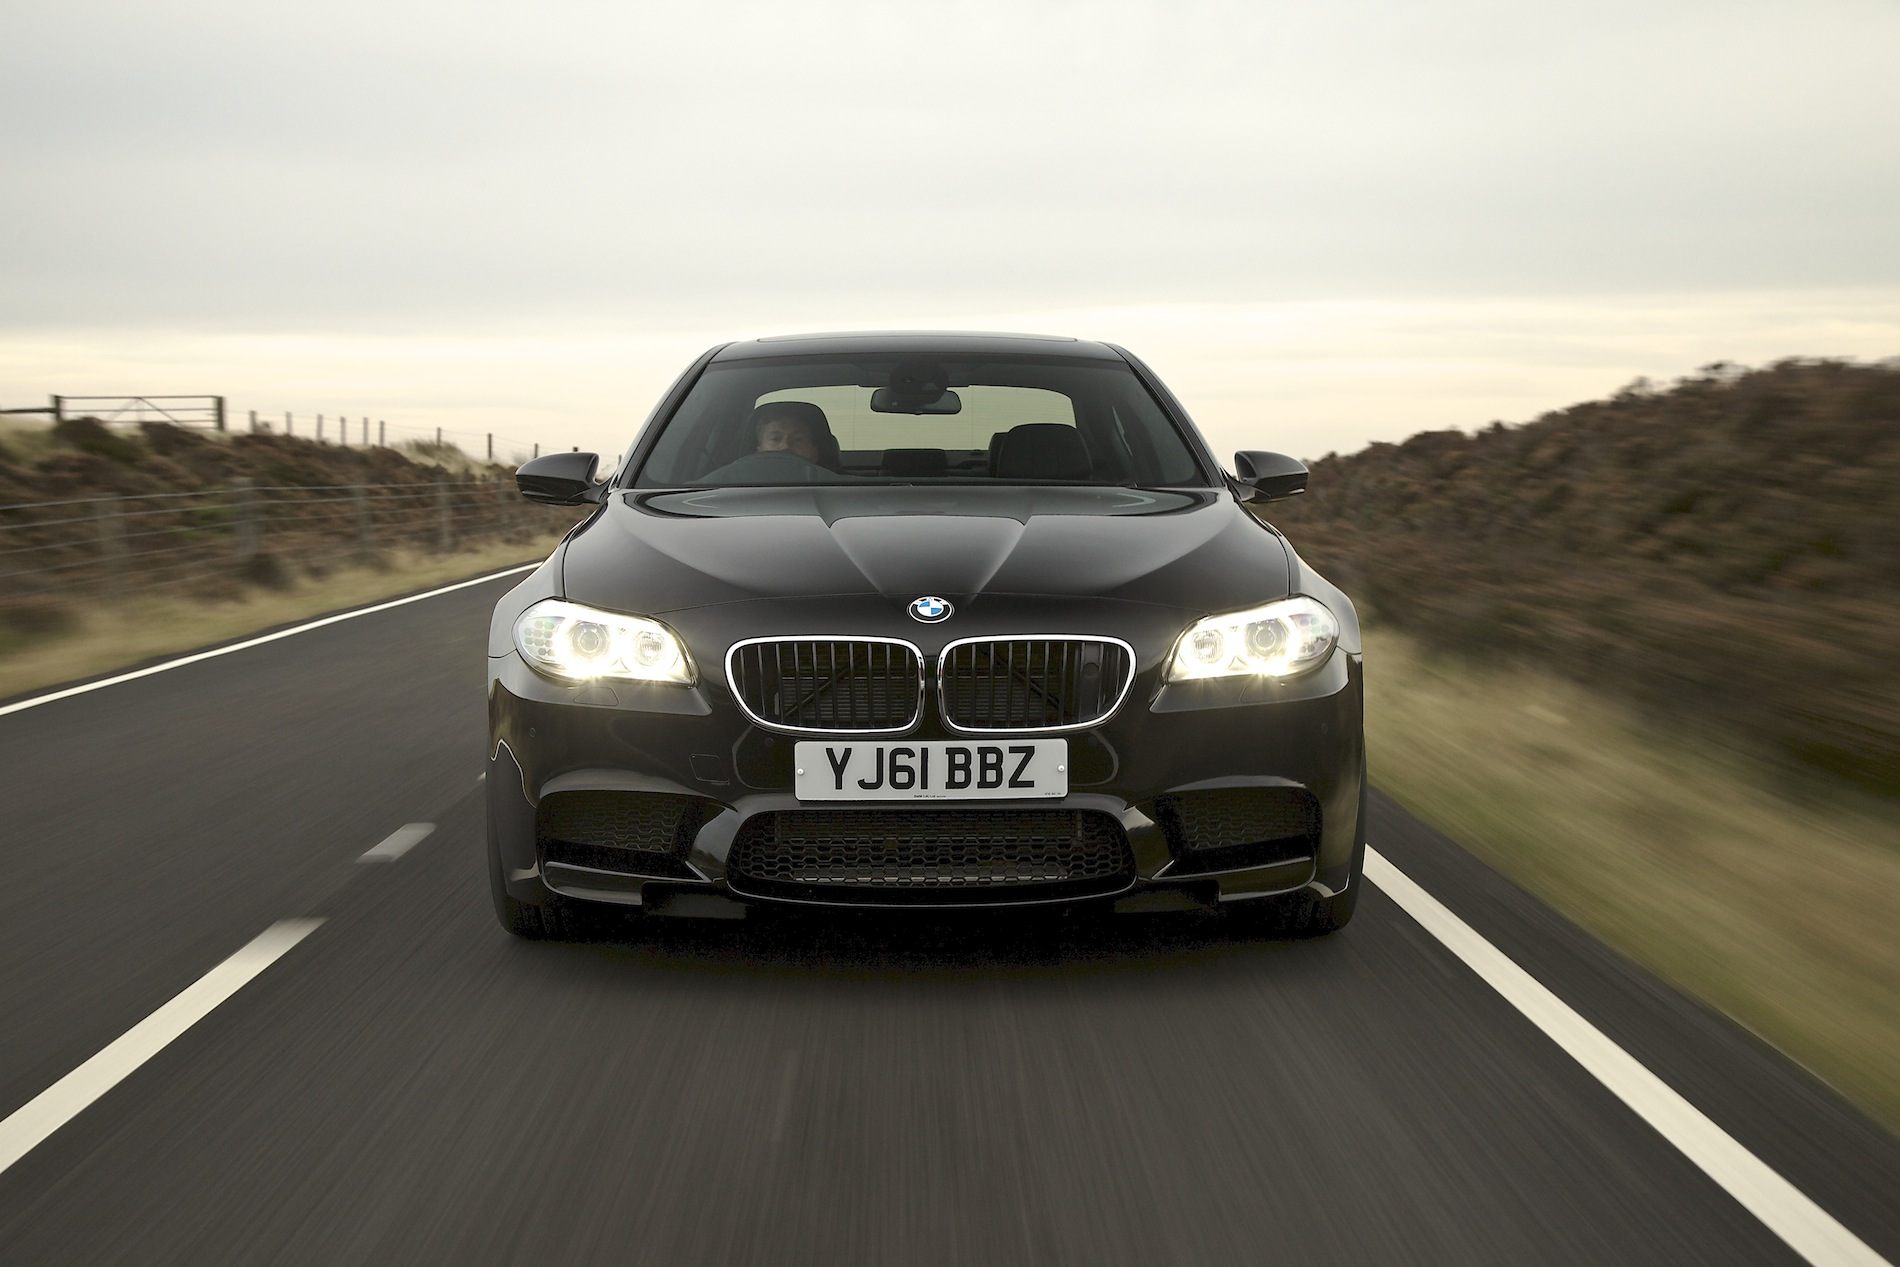 2012 BMW M5 (F10) Announced and Priced for UK. New Wallpapers